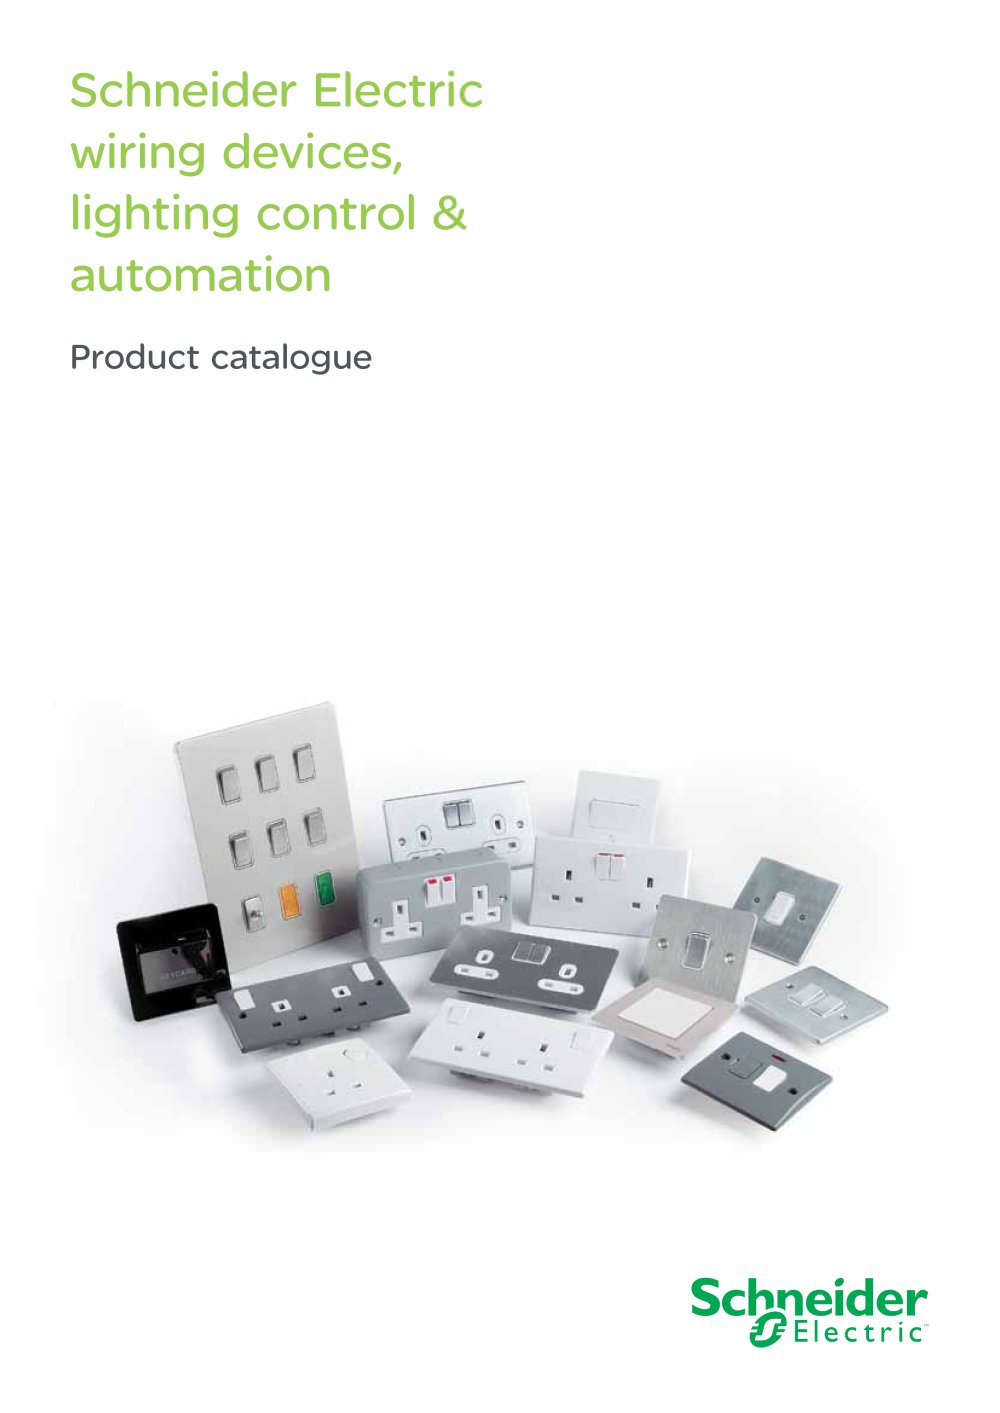 Schneider Electric wiring devices, lighting control & automation ...